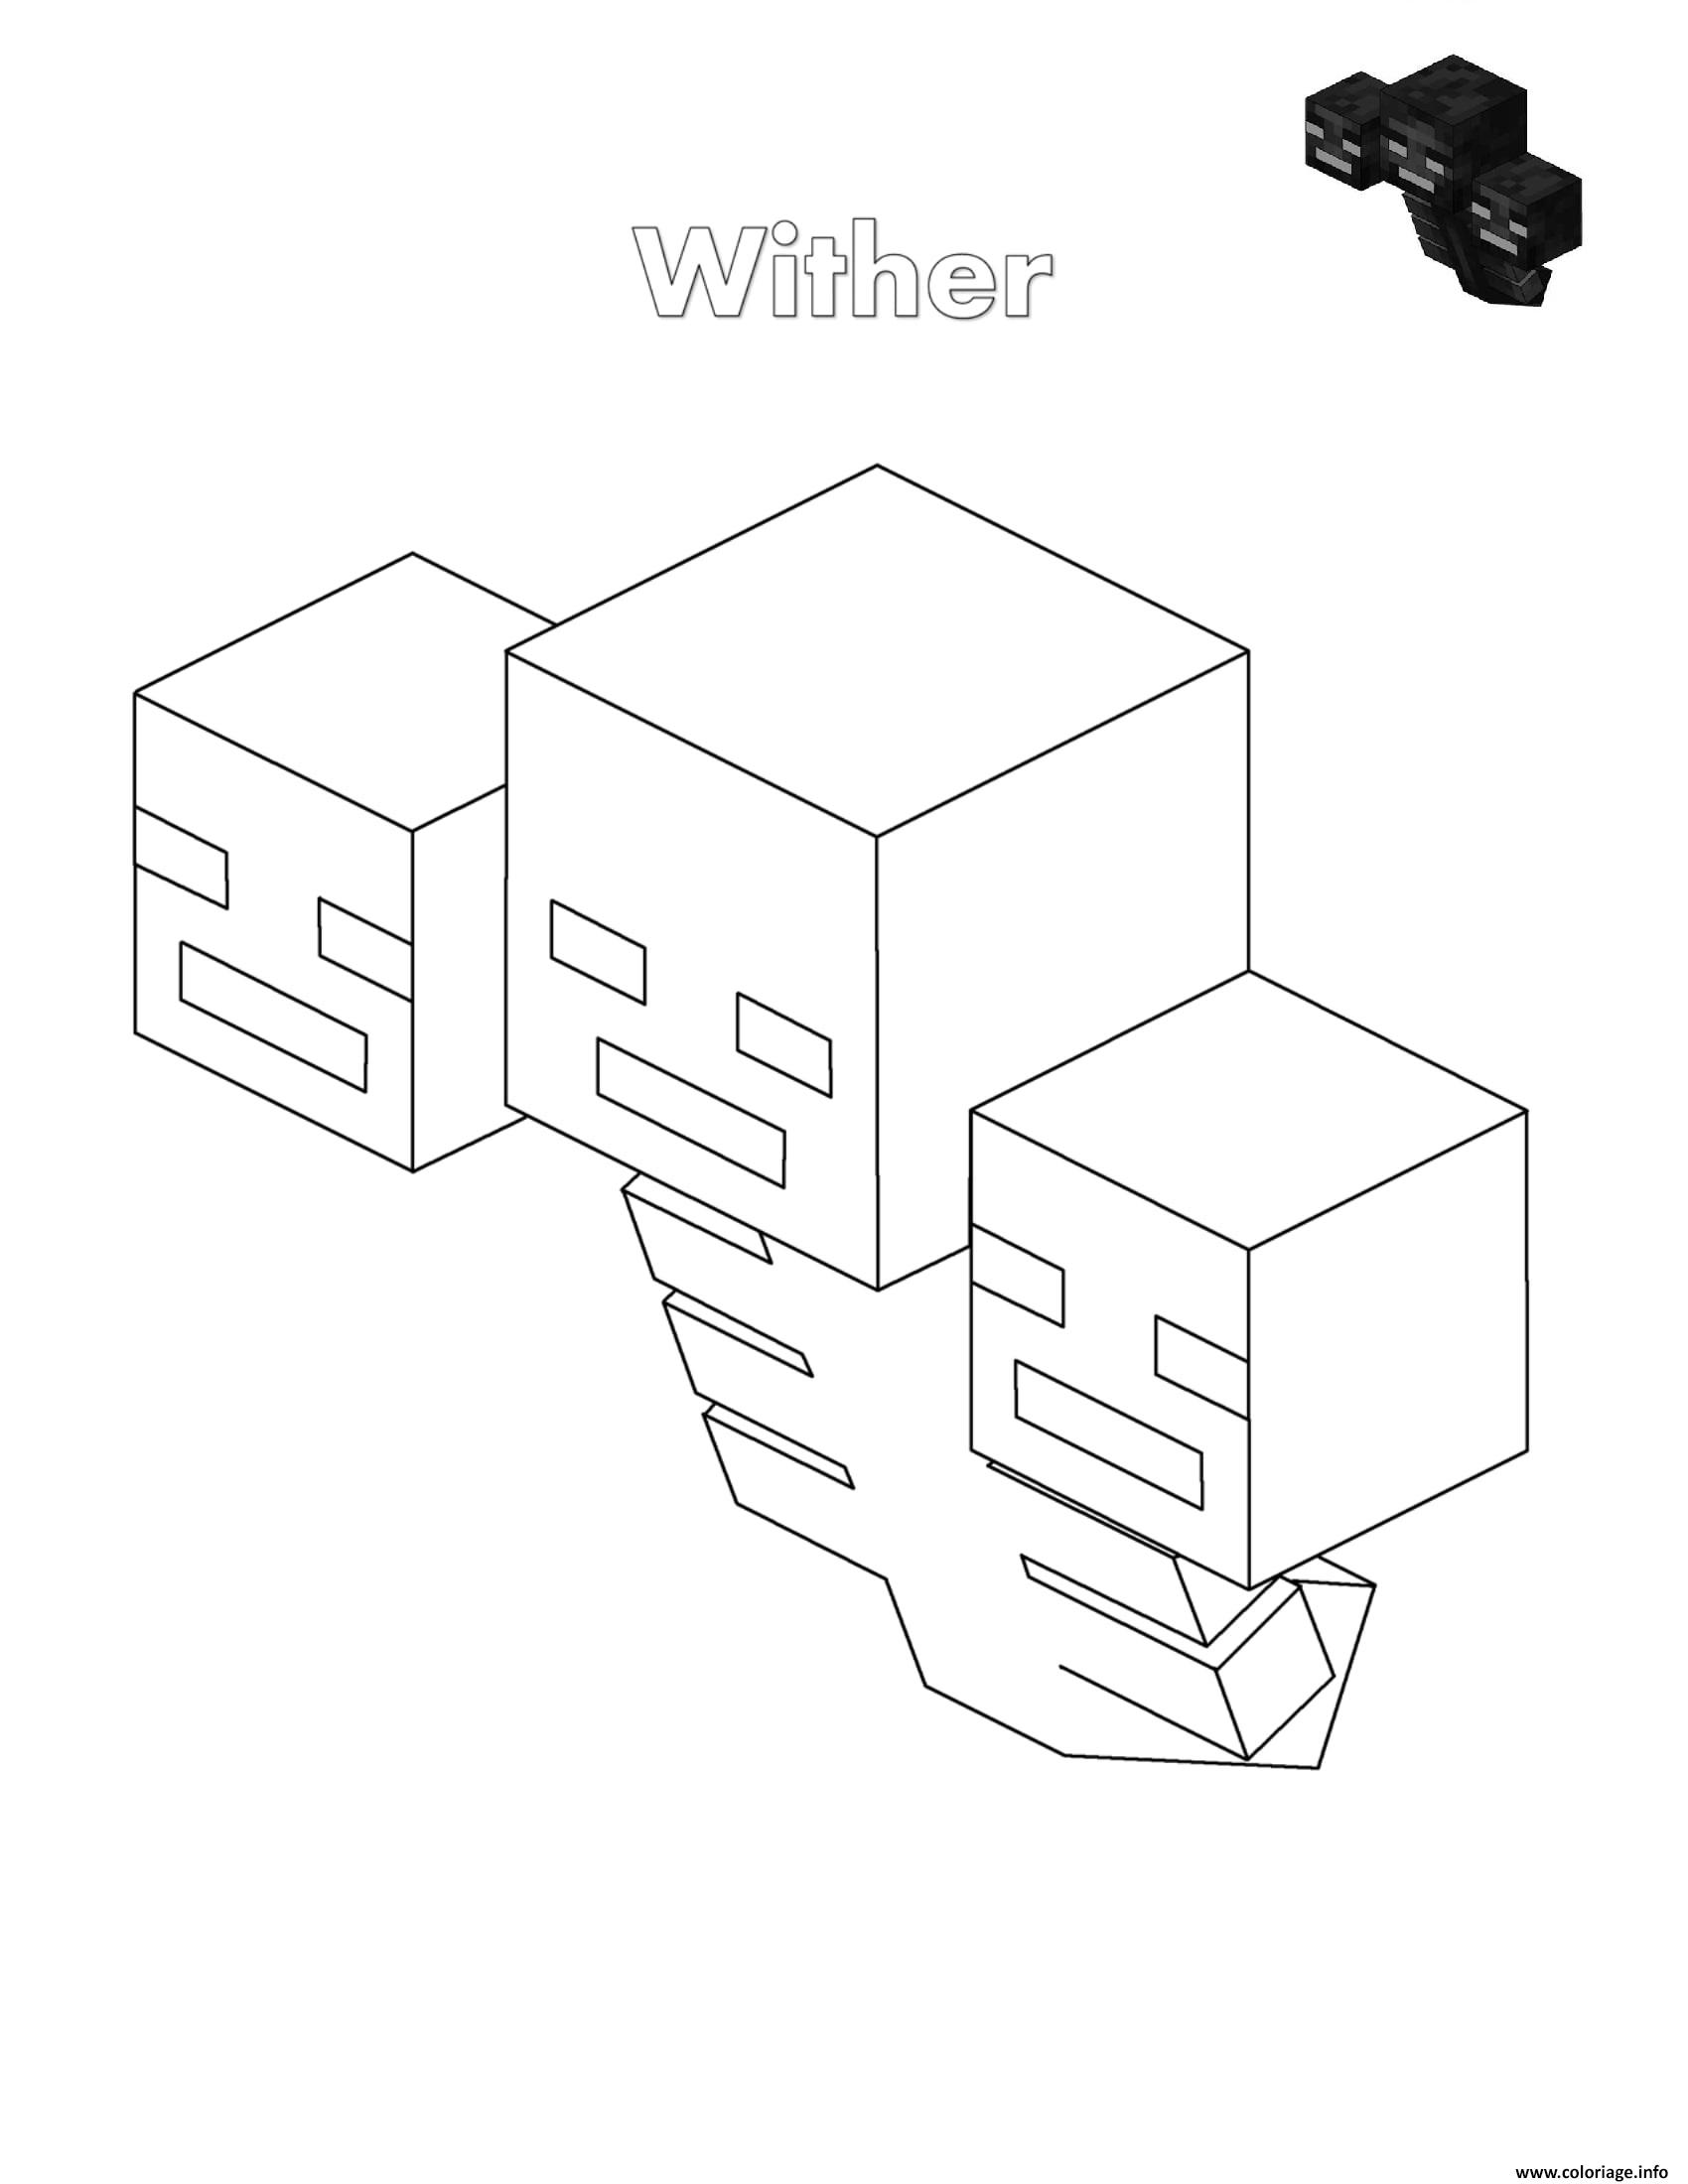 Dessin wither minecraft Coloriage Gratuit à Imprimer